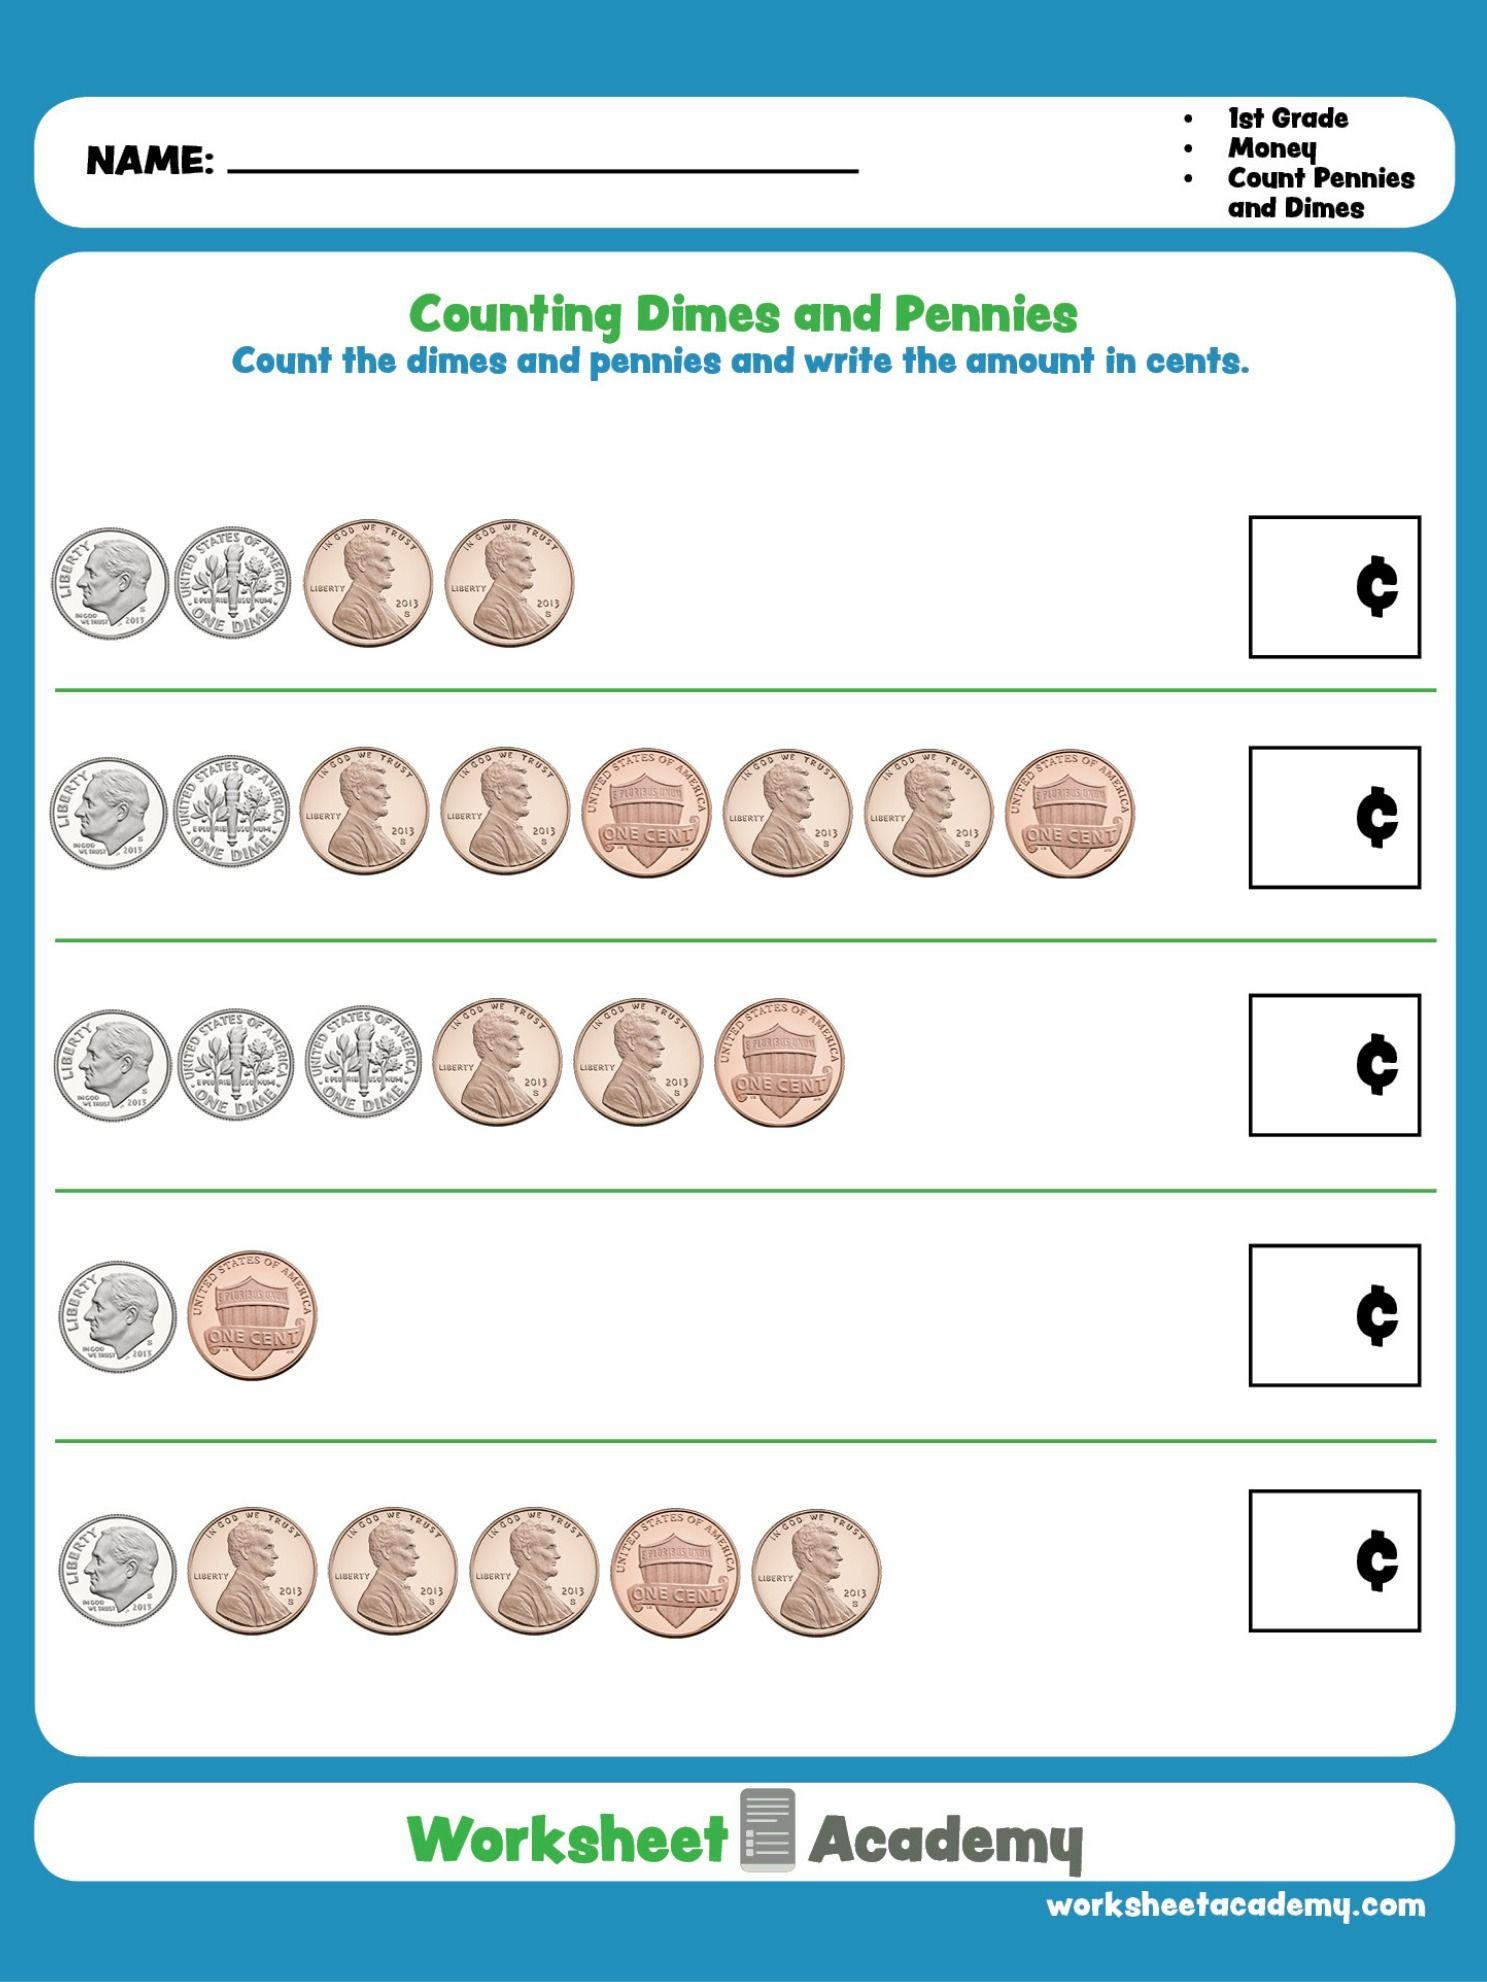 Counting Money Dimes Worksheets For Kindergarten   Printable Worksheets and  Activities for Teachers [ 1982 x 1487 Pixel ]